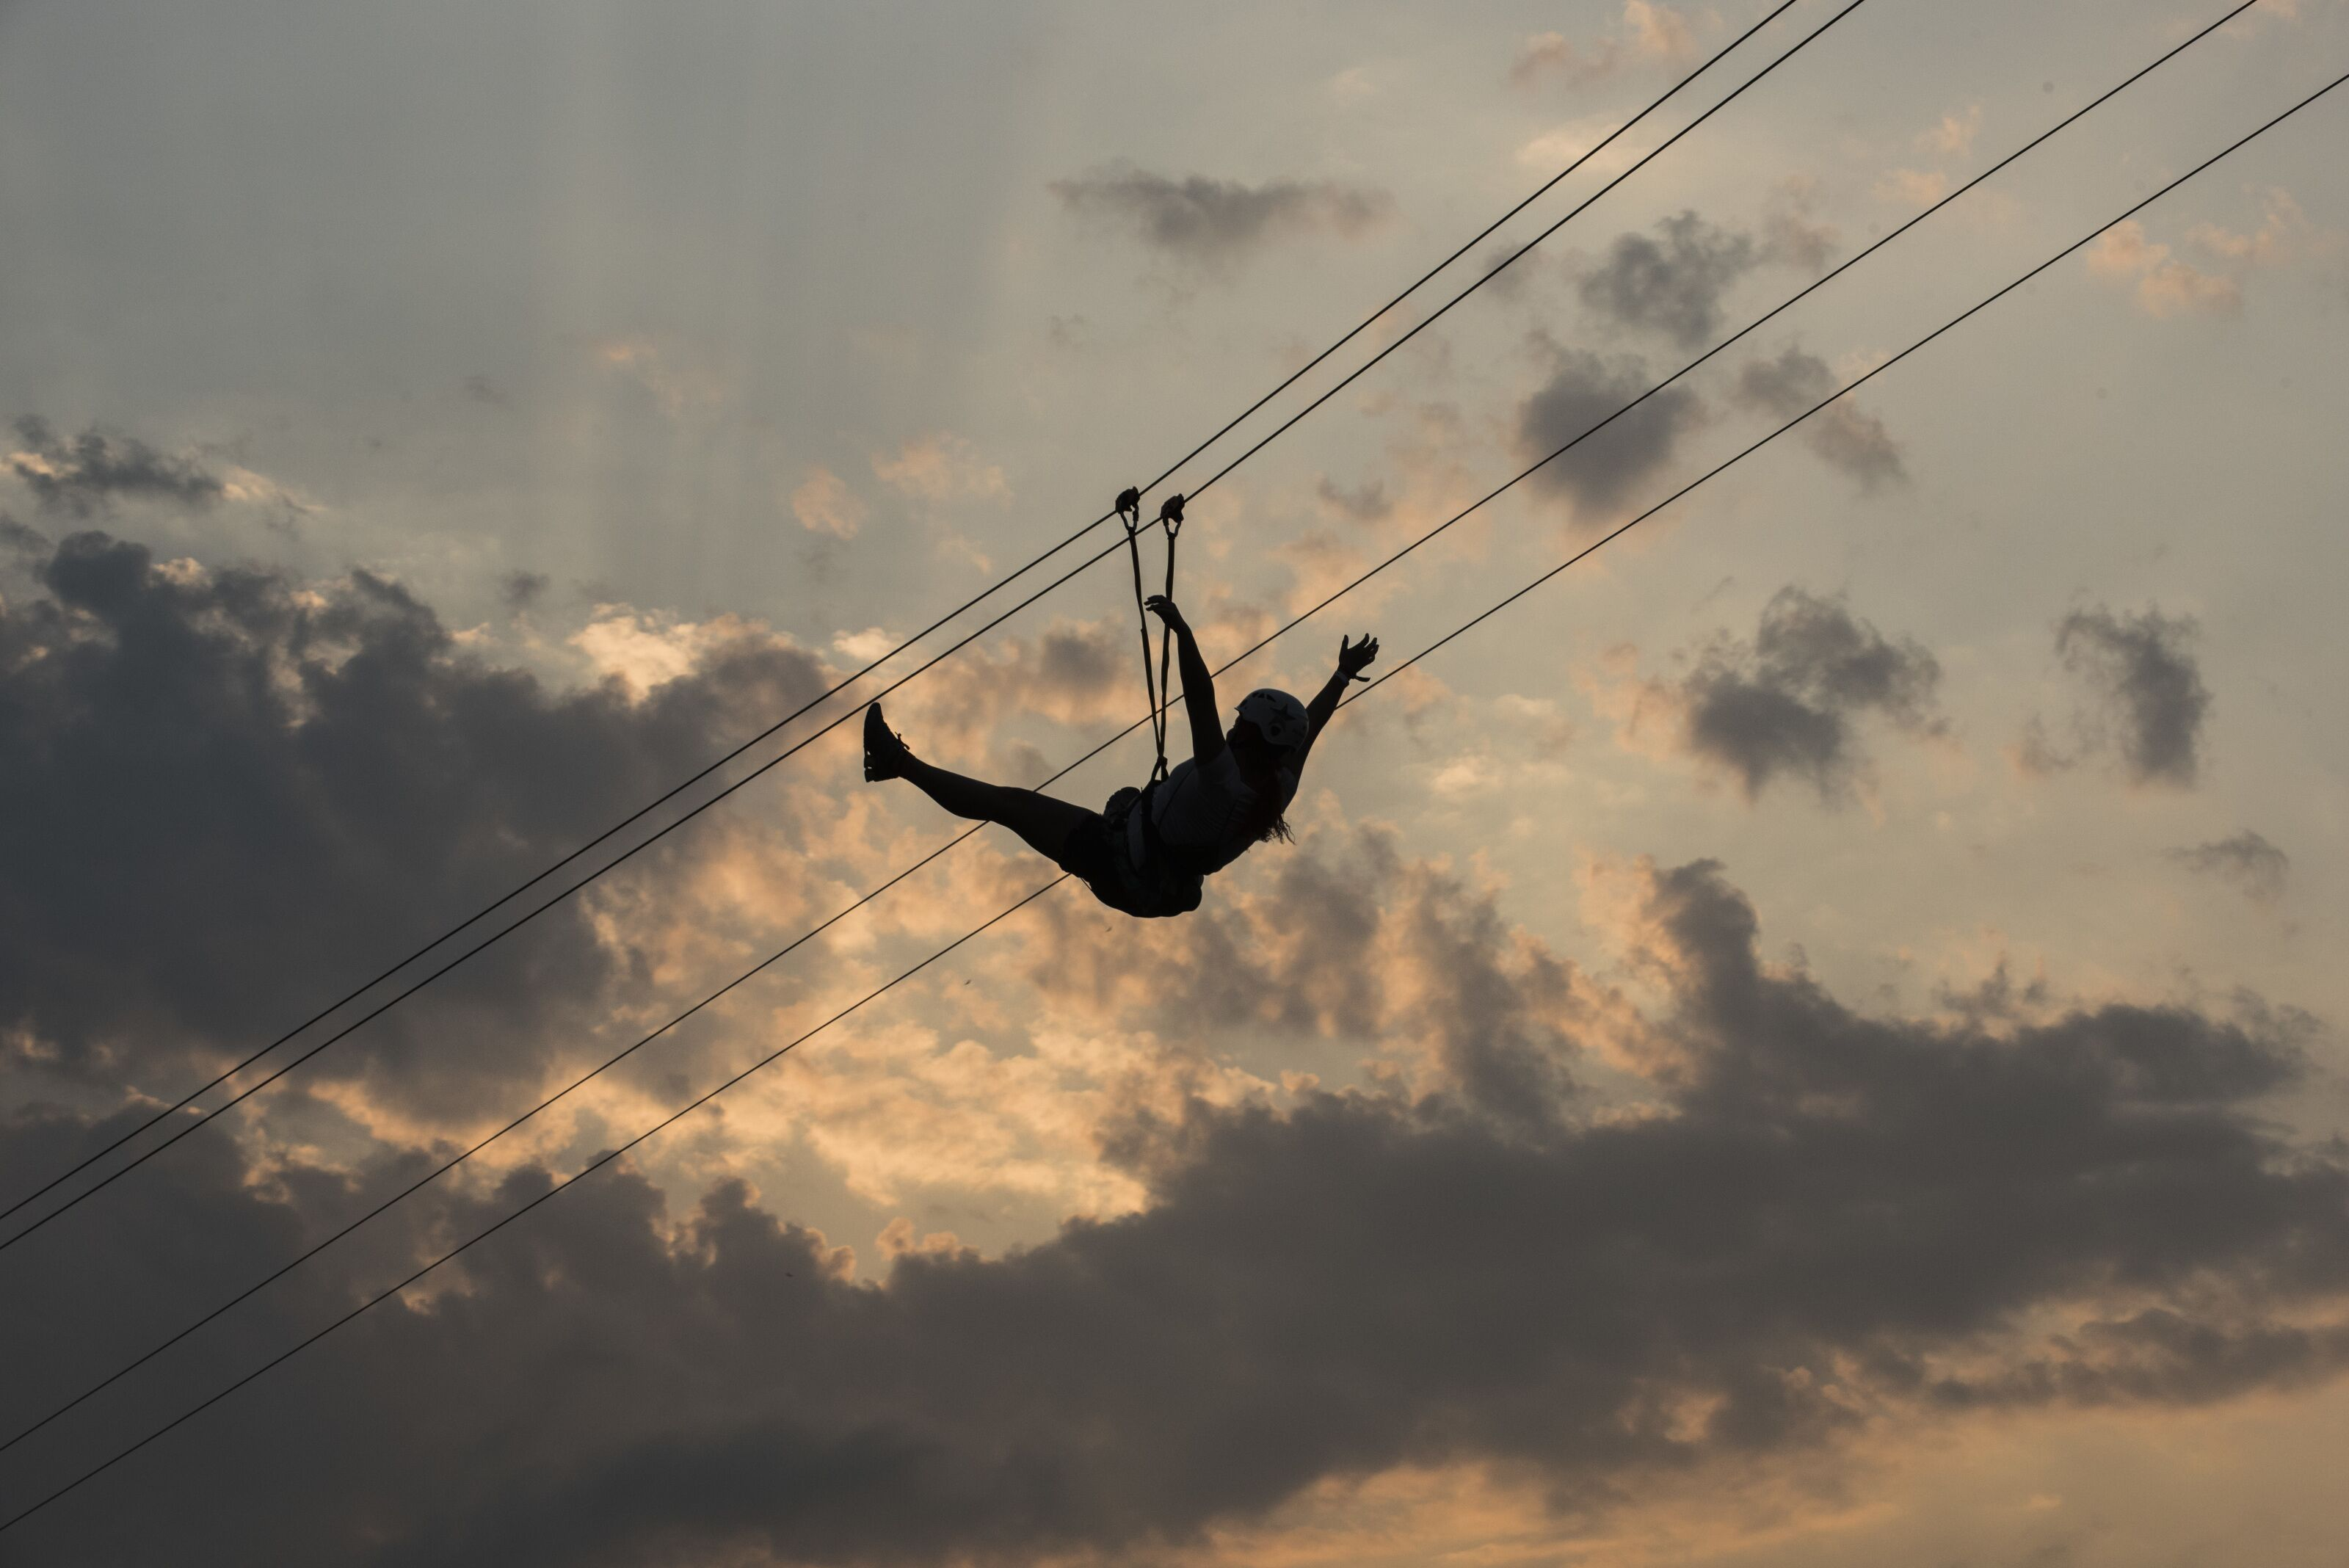 Jimmy Fallon (barely) conquers Puerto Rico's Monster zip line